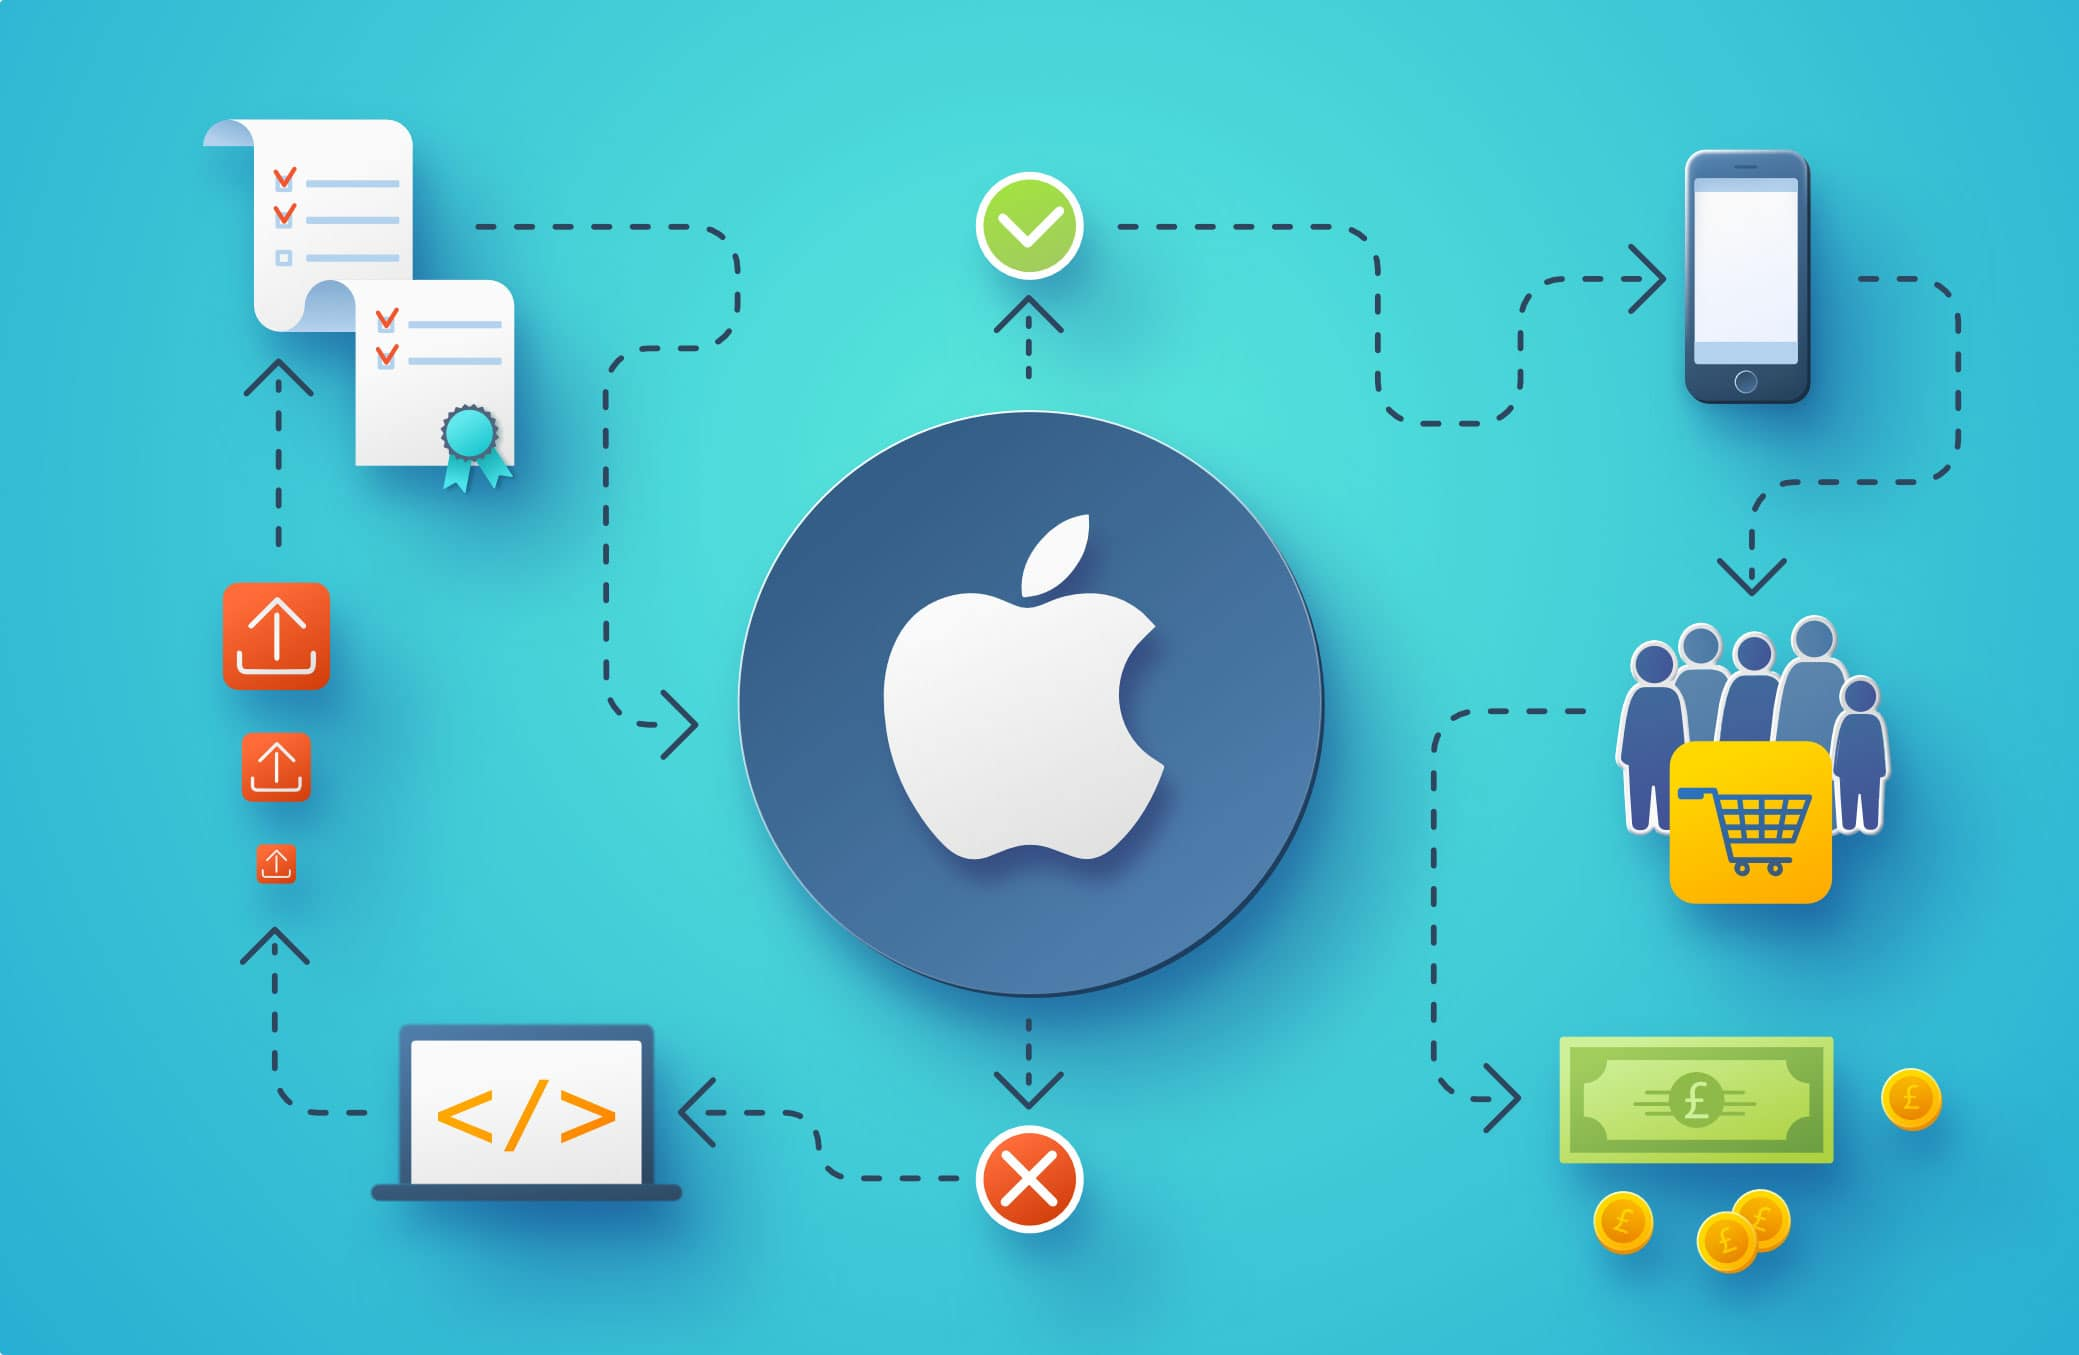 How does the App Store approval process work?